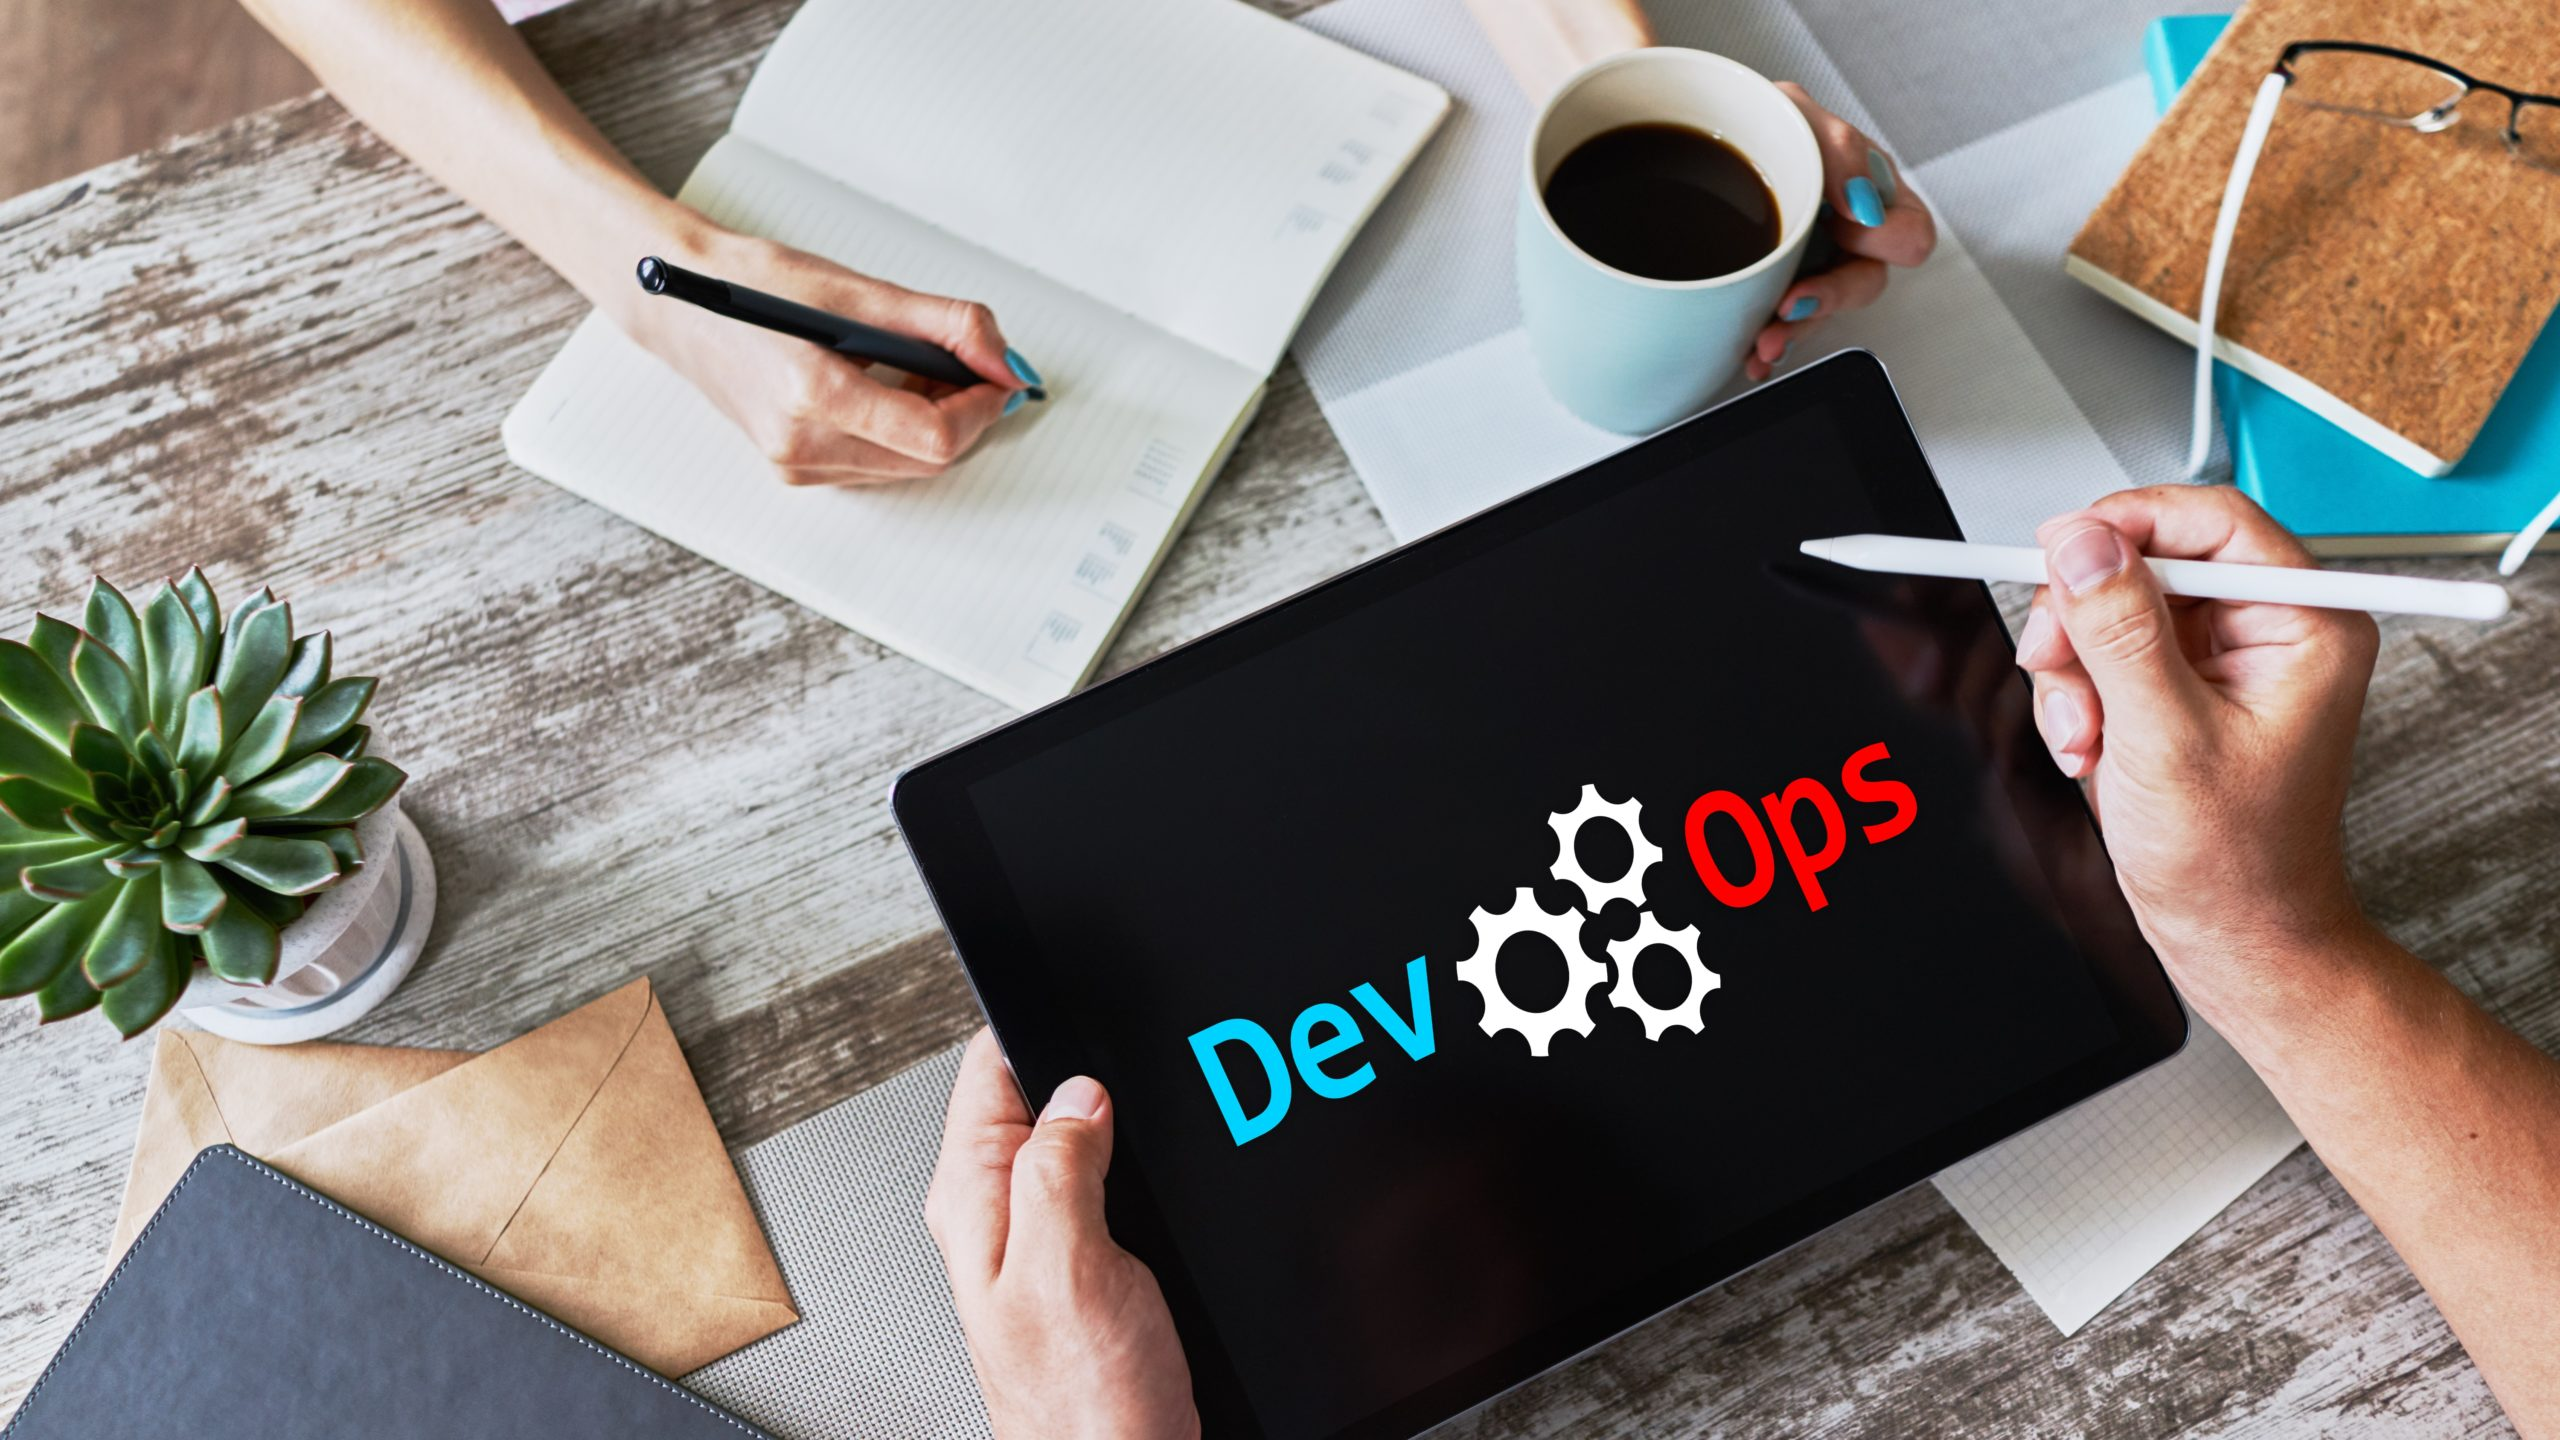 Lessons from the DevOps shop floor